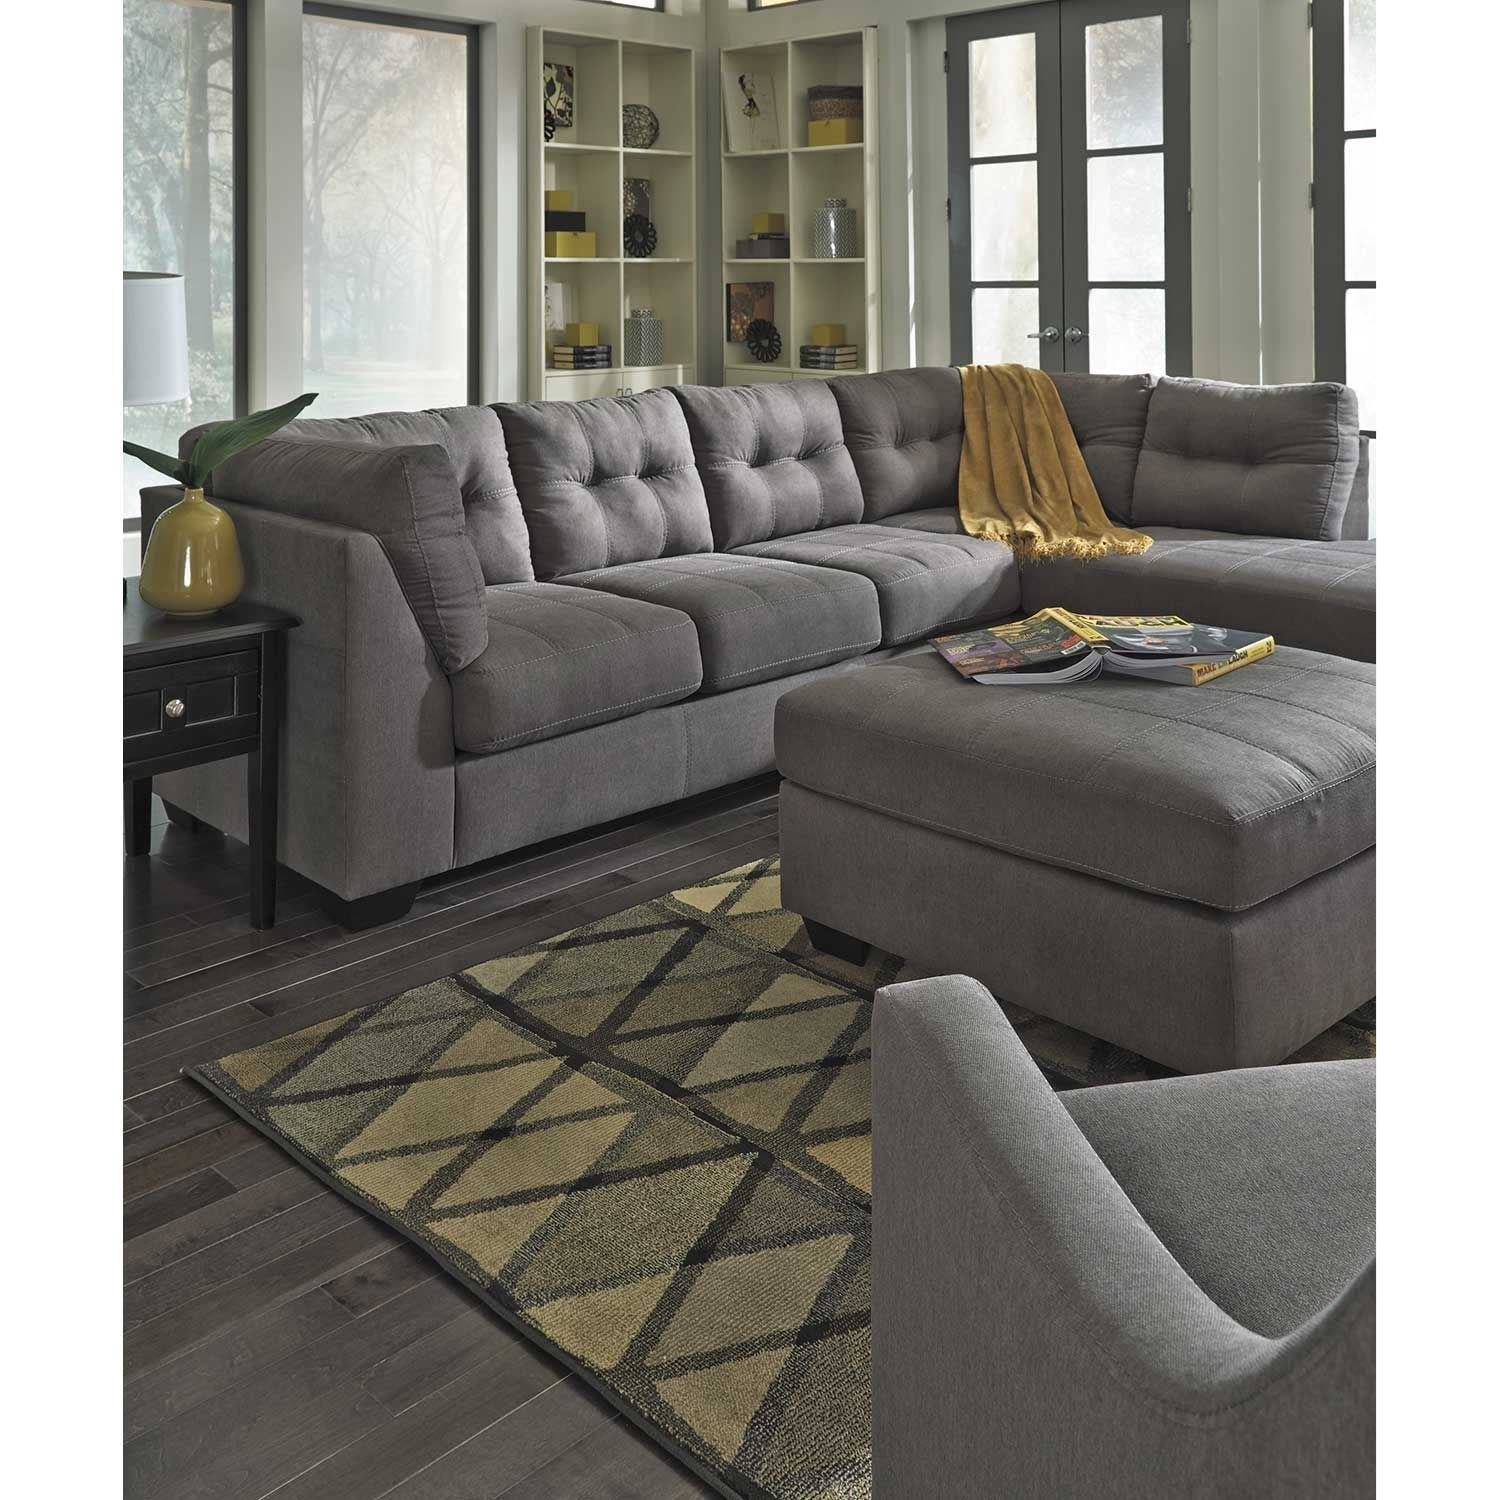 Maier Charcoal 2 Piece Sectional With Laf Chaise | 4520016/67 inside Arrowmask 2 Piece Sectionals With Raf Chaise (Image 19 of 30)